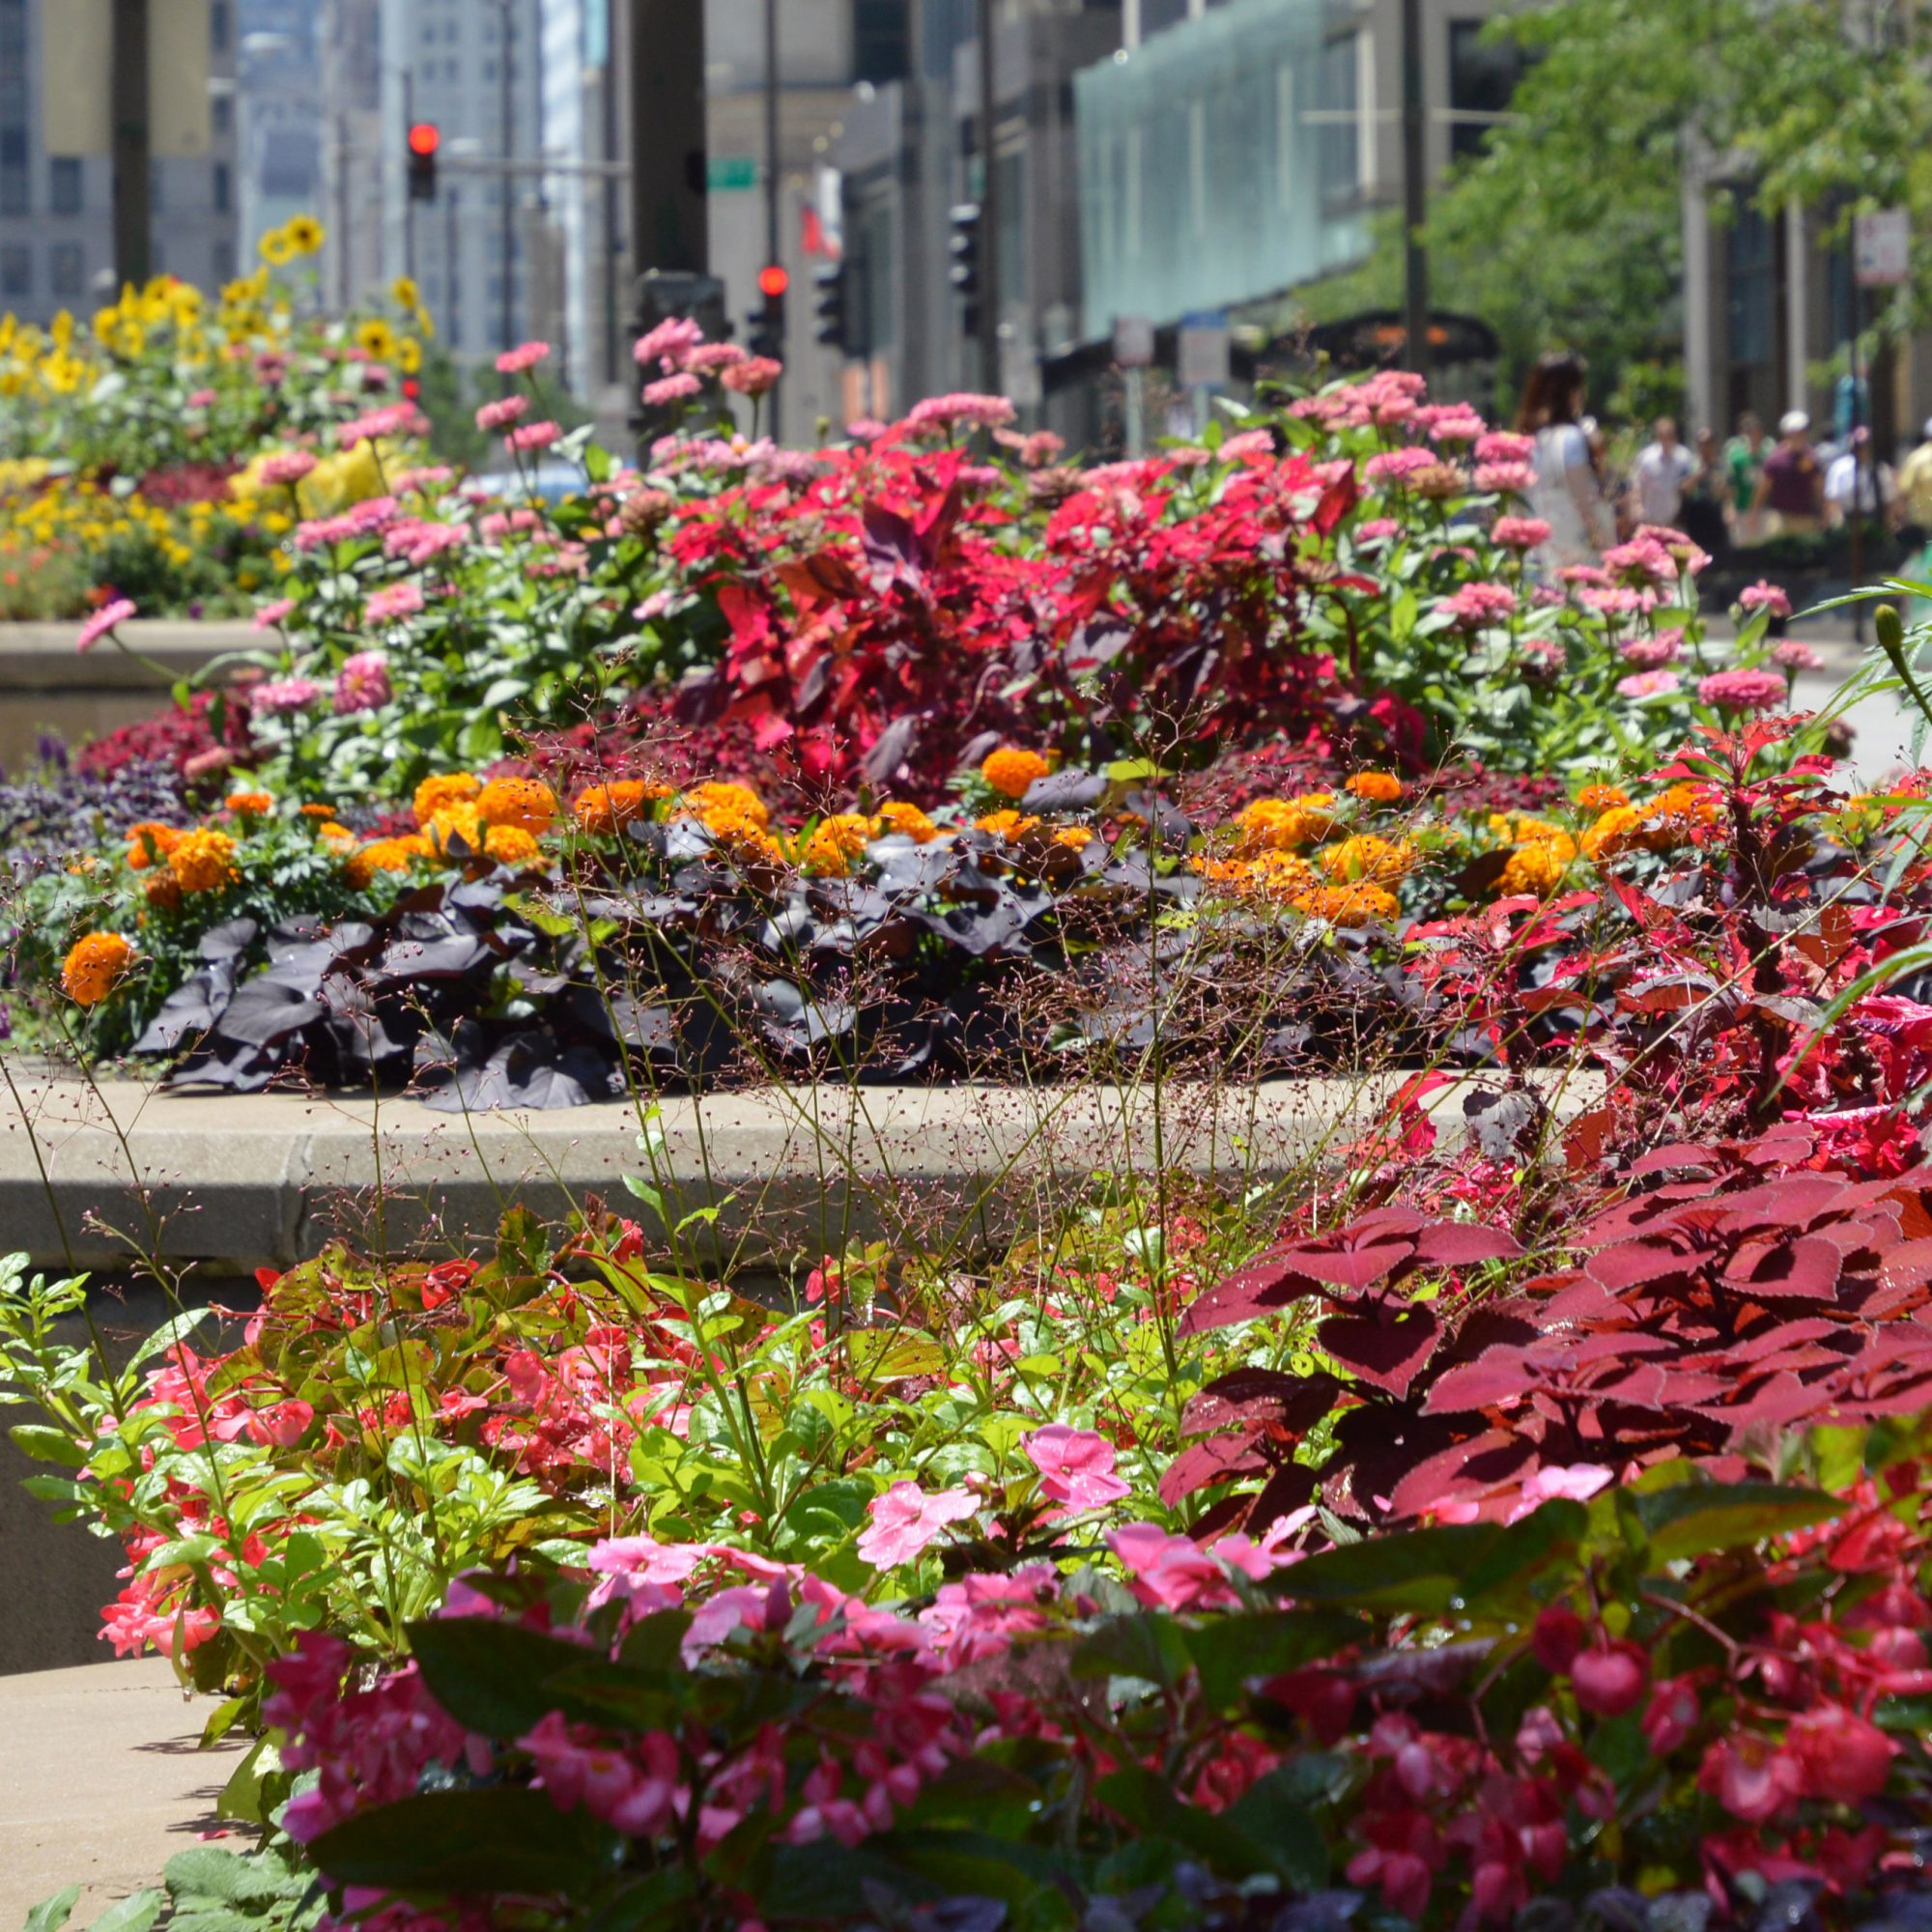 Michigan Avenue planters